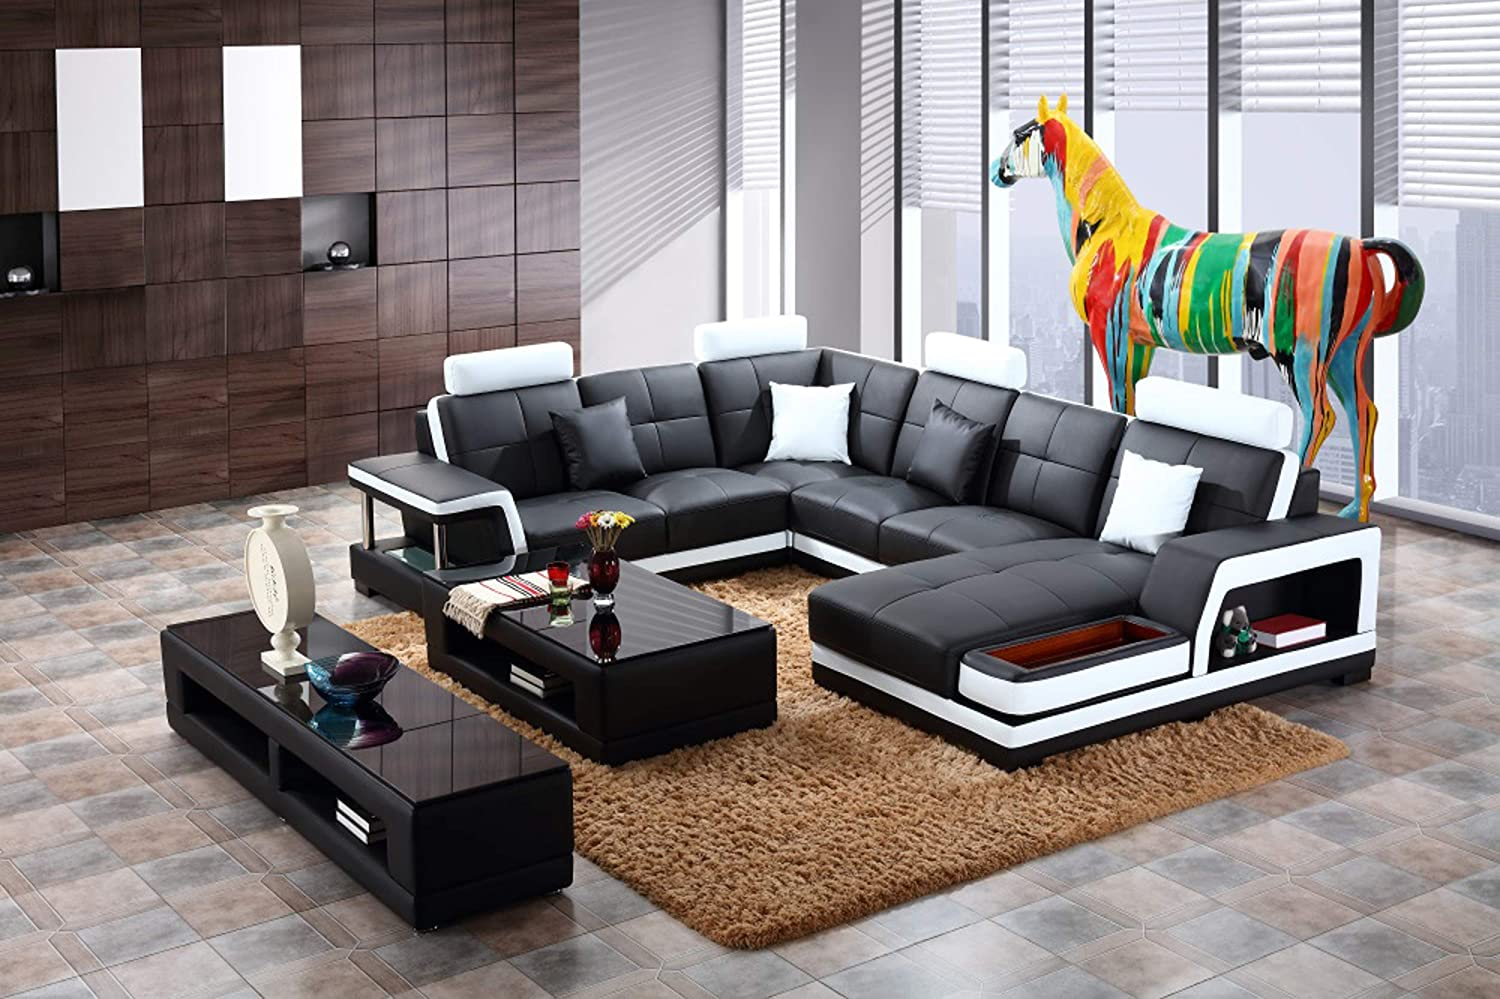 Oakland living t729 sect ct tvs bk black and white contemporary real leather furniture storage shelf coffee table and tv stand modern sectional living room